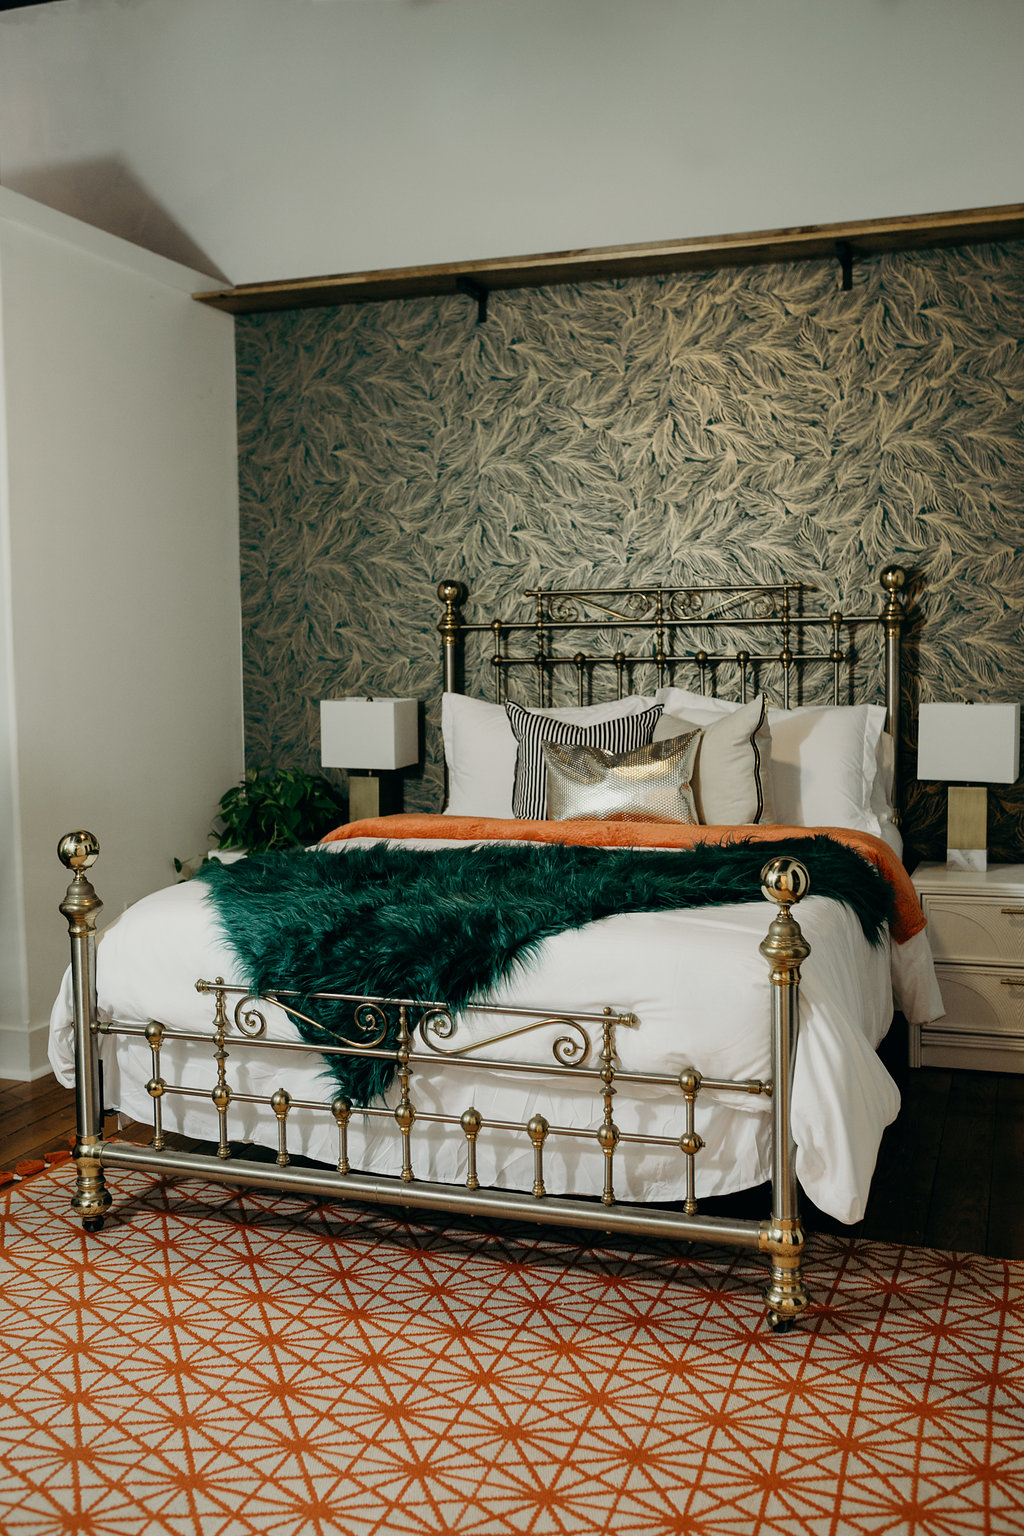 Queen bed, orange and green throws, green wallpaper, springfield airbnb